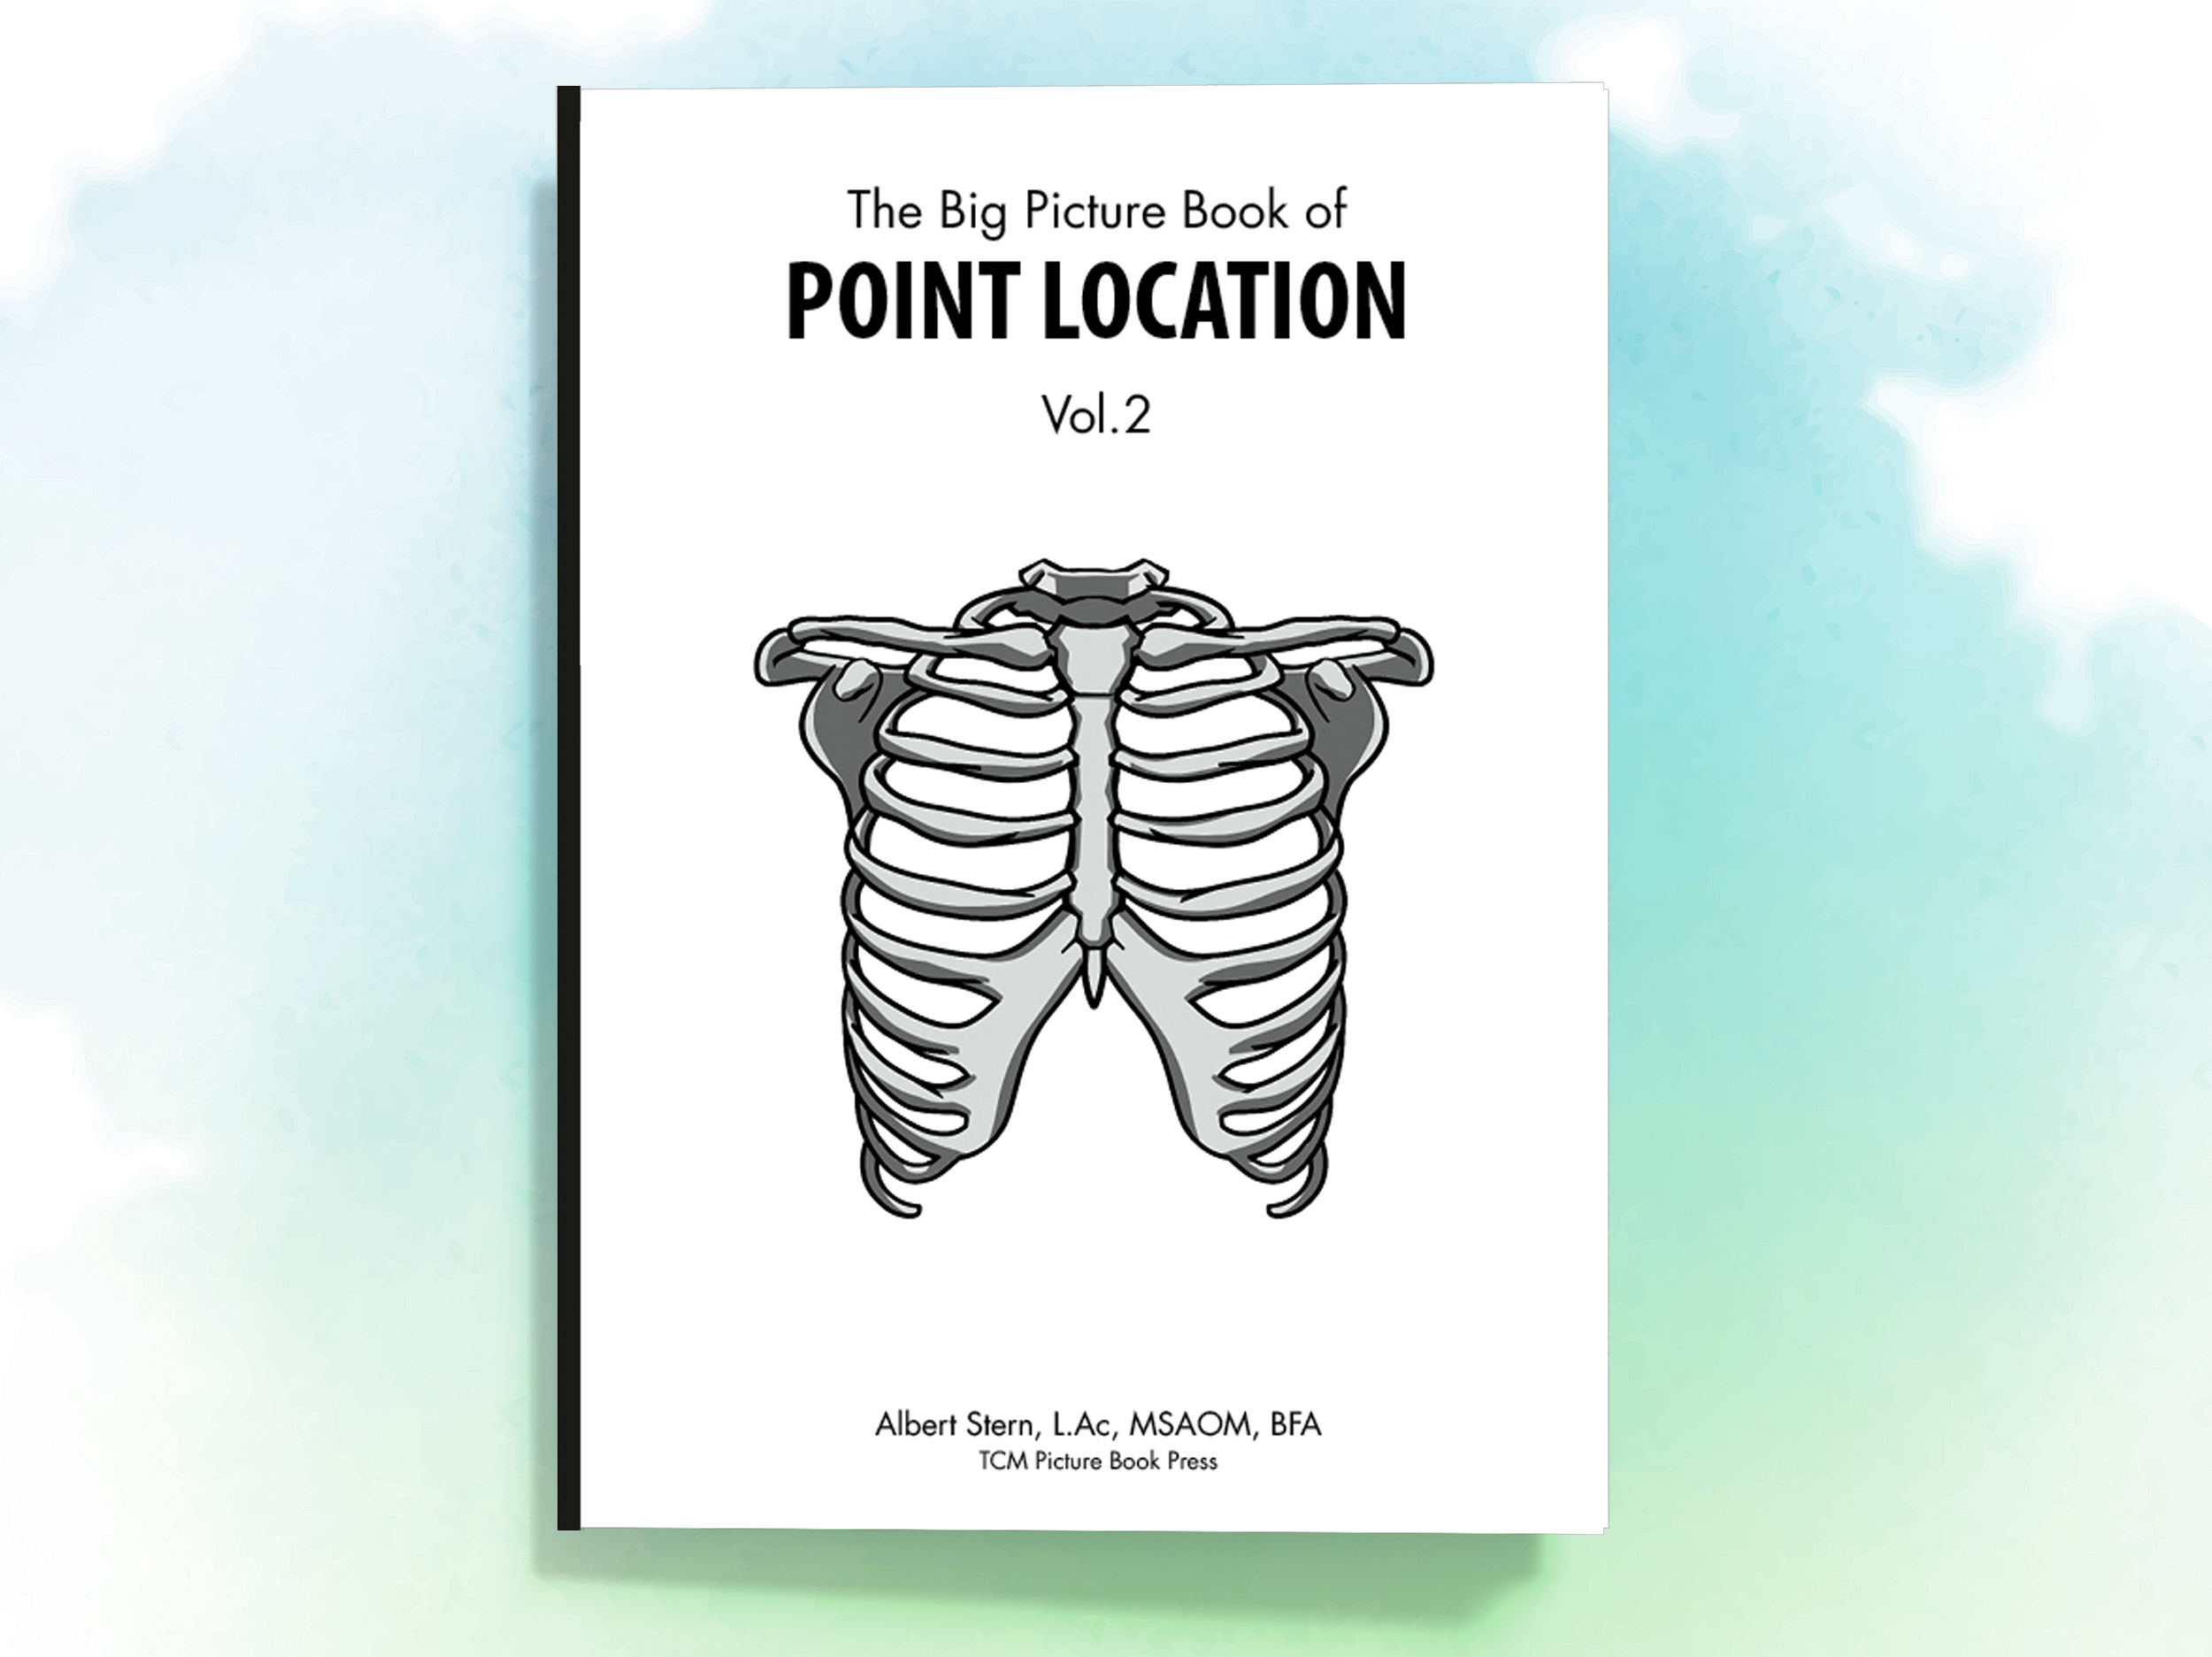 Point location Vol. 2 -